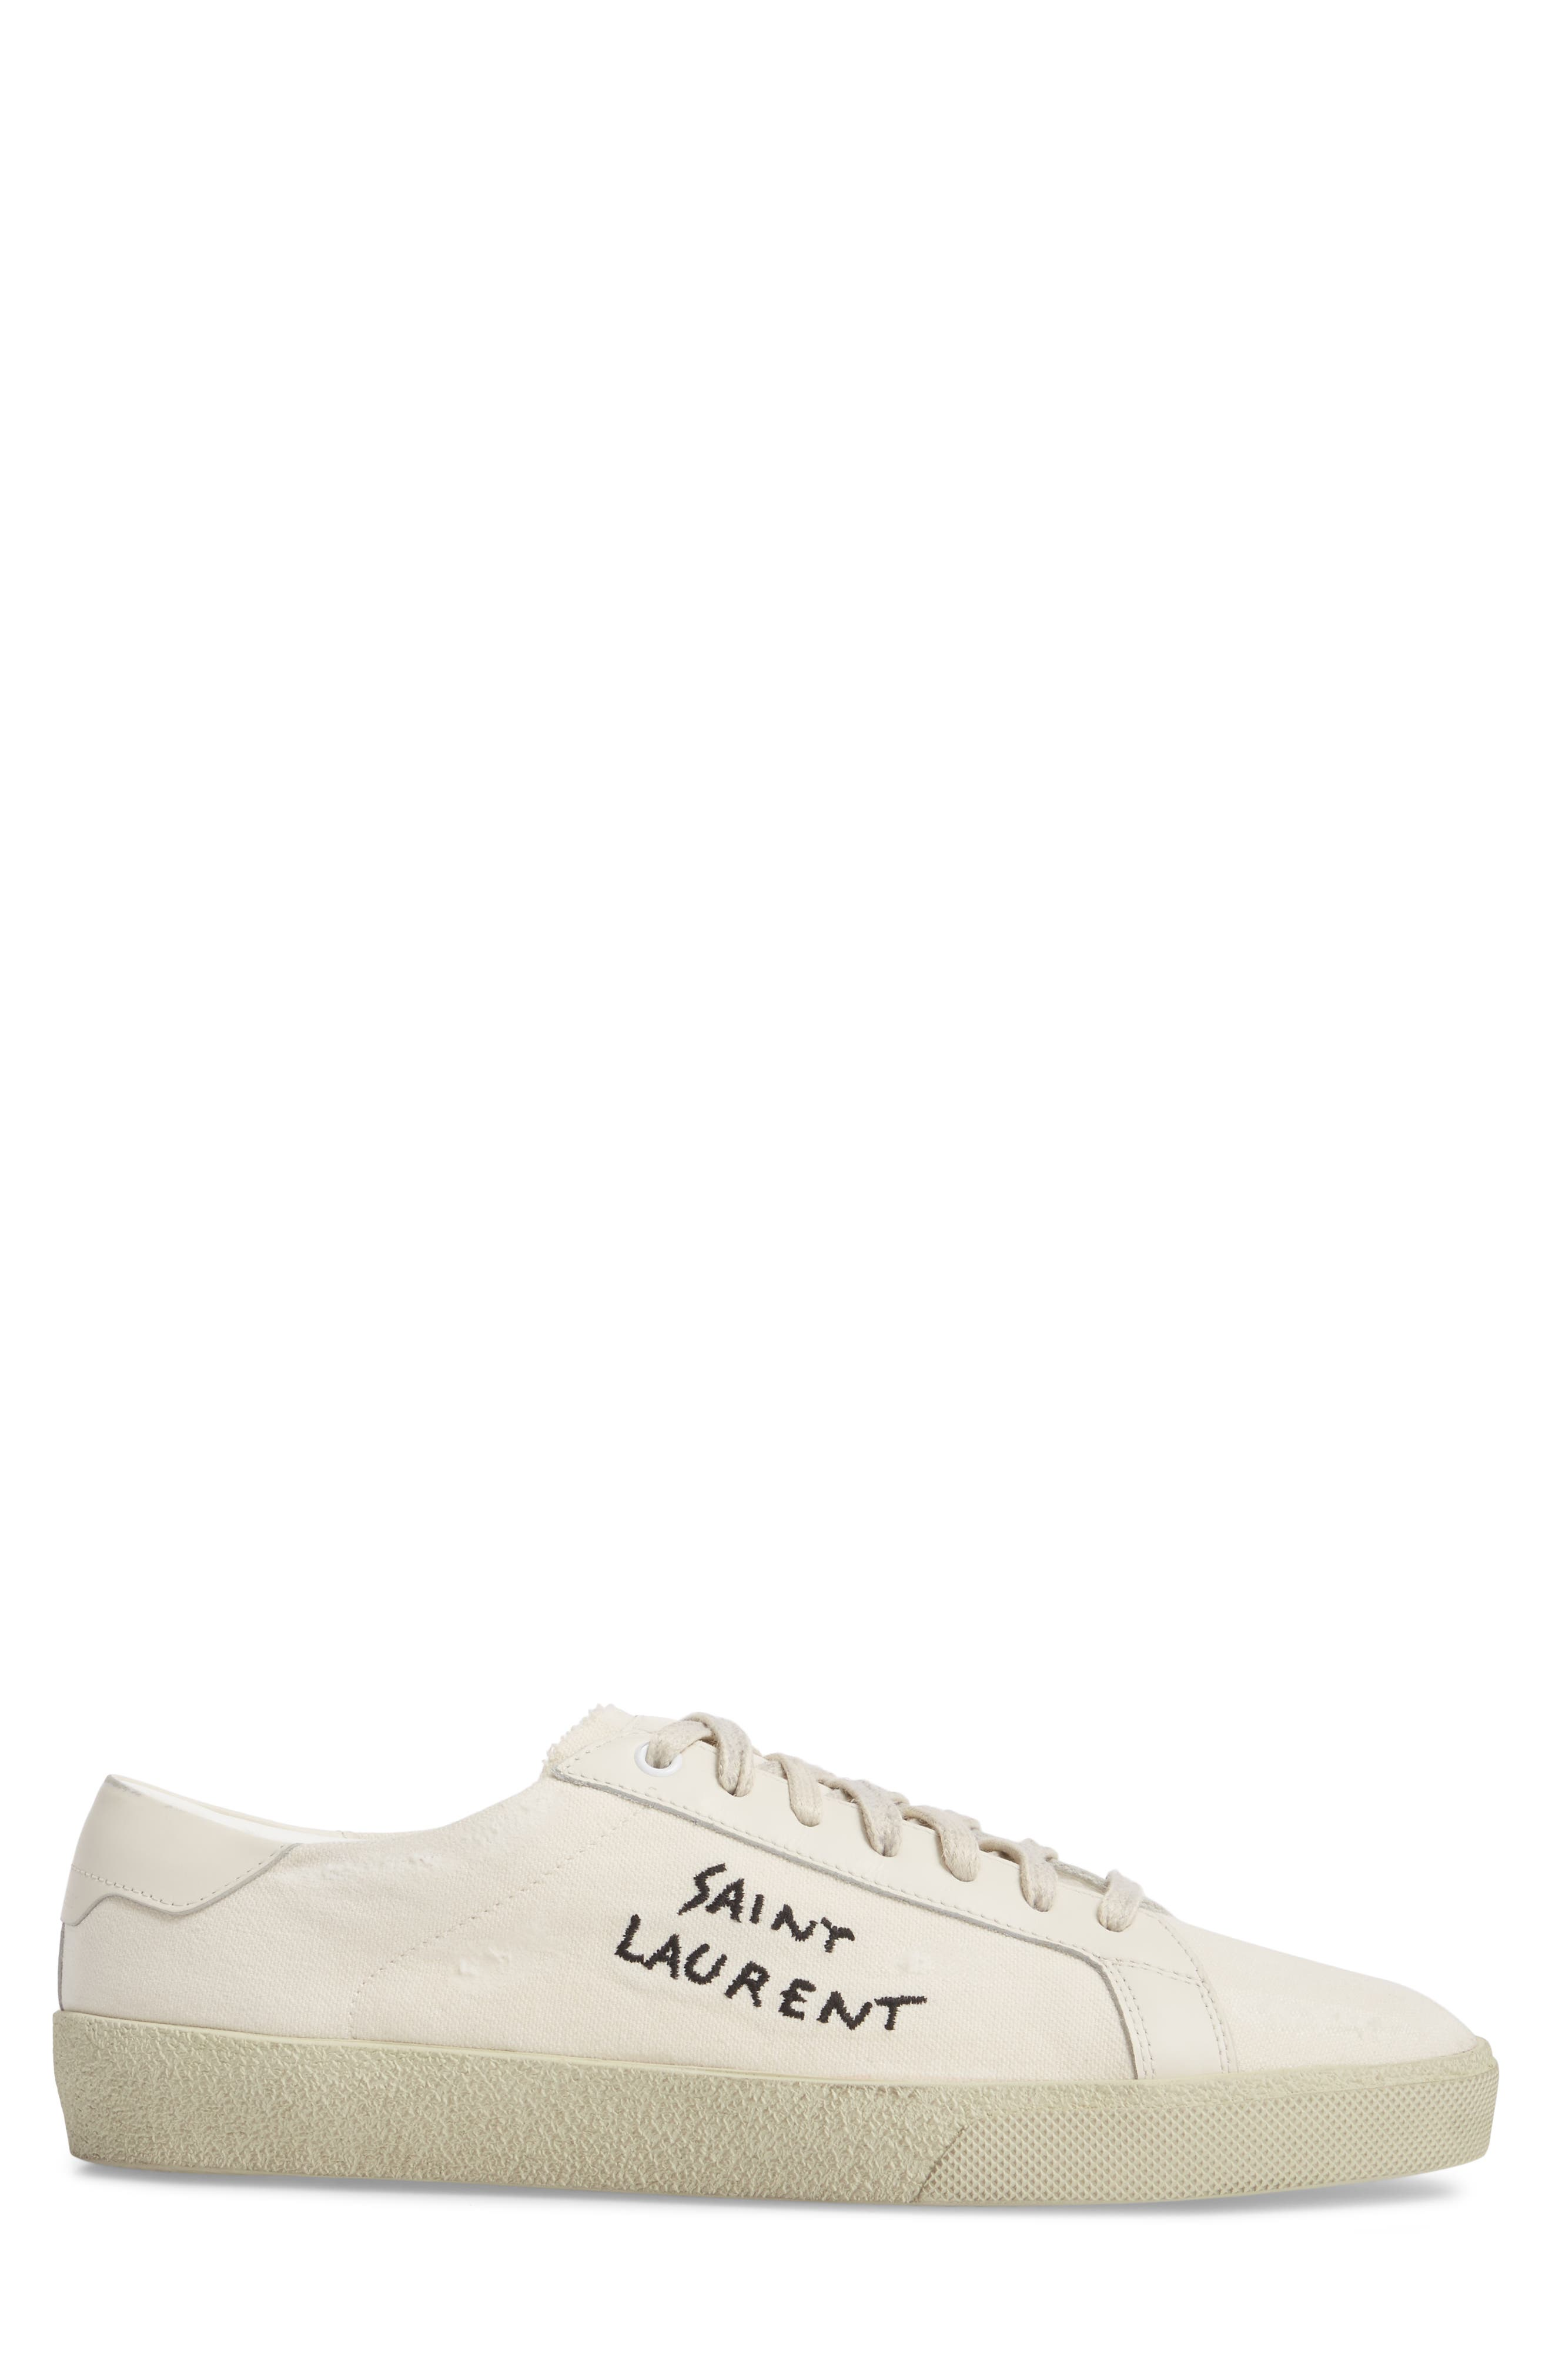 Embroidered Low Top Sneaker,                             Alternate thumbnail 3, color,                             Pesca